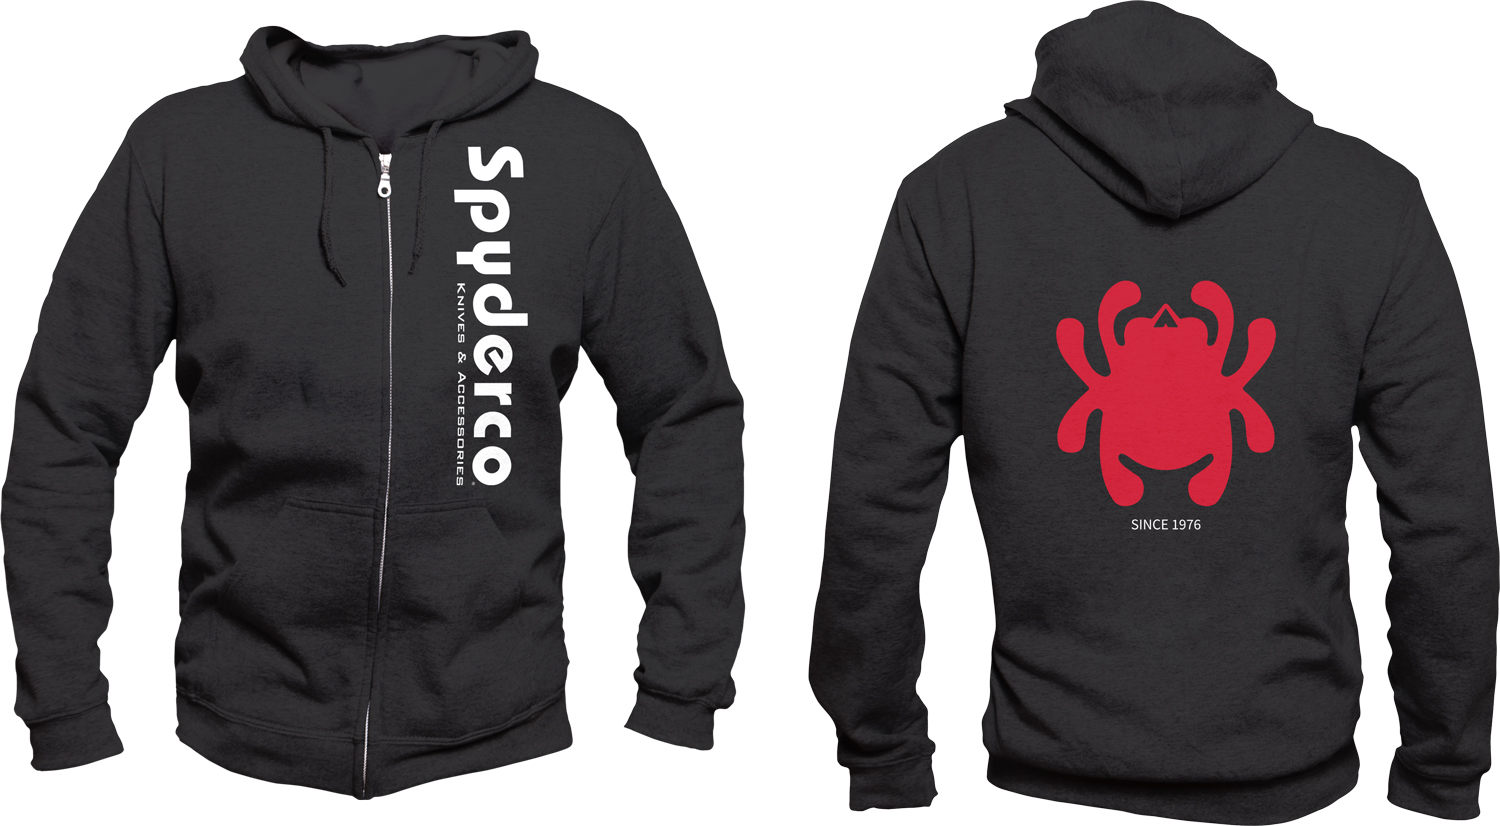 Spyderco Unisex Hooded Sweatshirt, Black, Extra Large